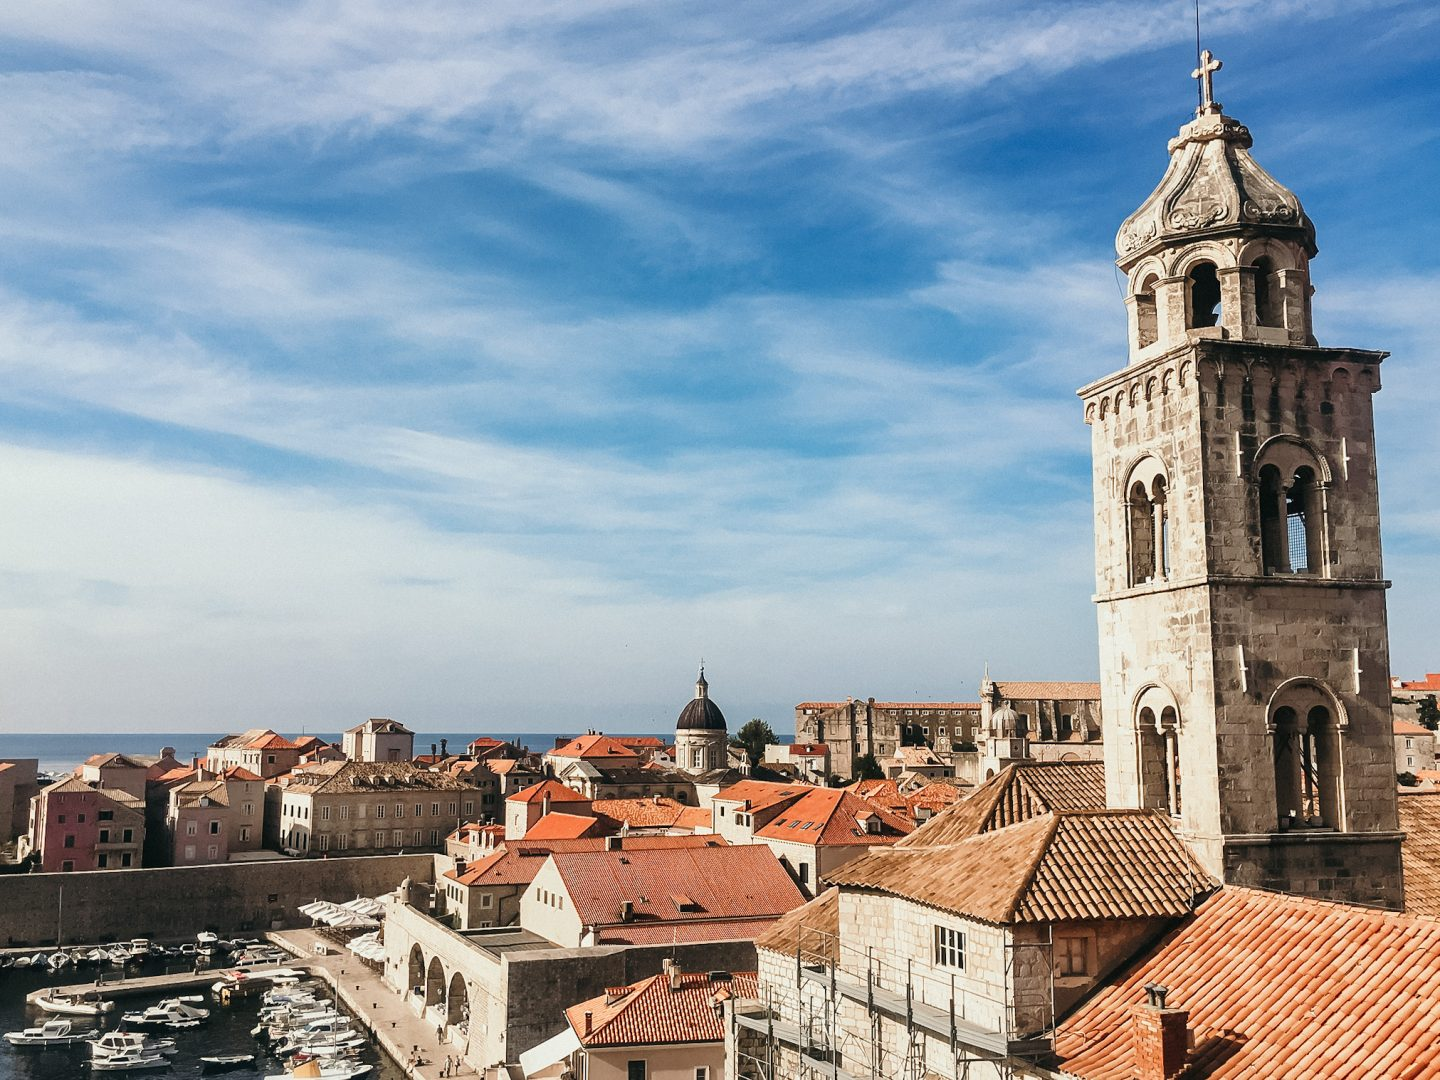 Visiting Dubrovnik on our holidays through the Balkans